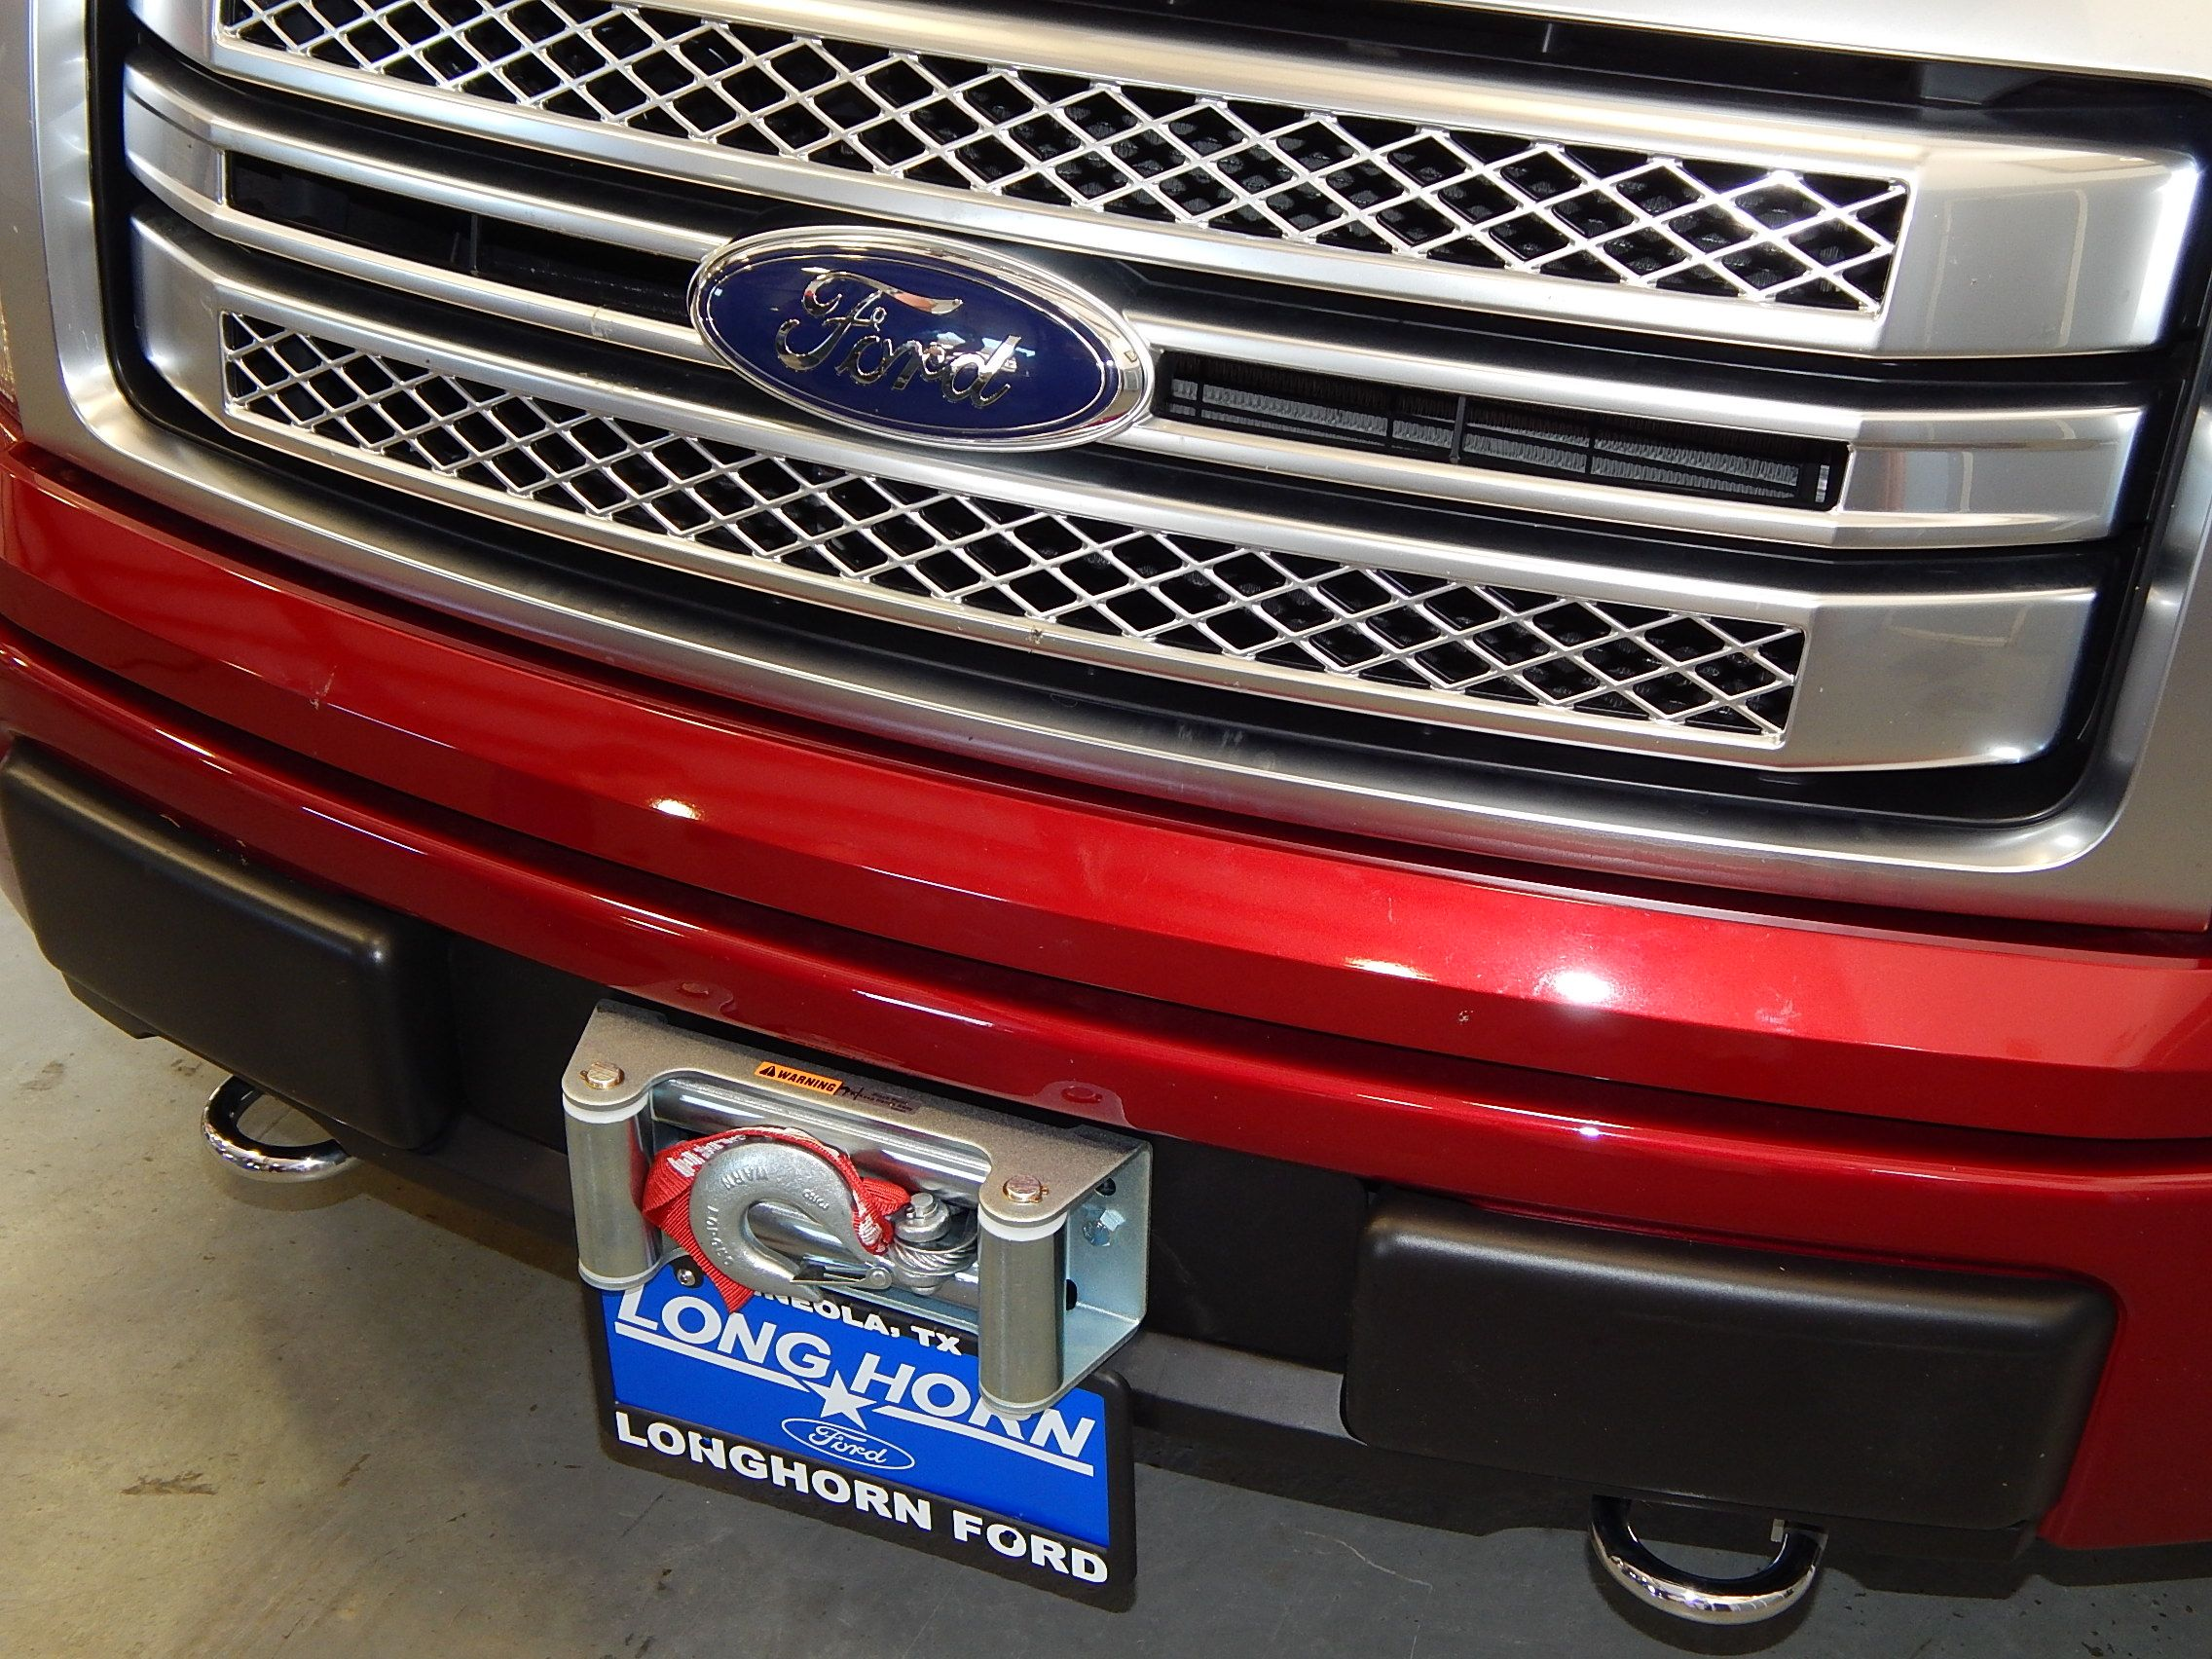 hight resolution of hidden winch installation on a ford f150 with a v8 engine the warn 9 5cti winch is hidden behind the front bumper leaving only the tow hook and roller